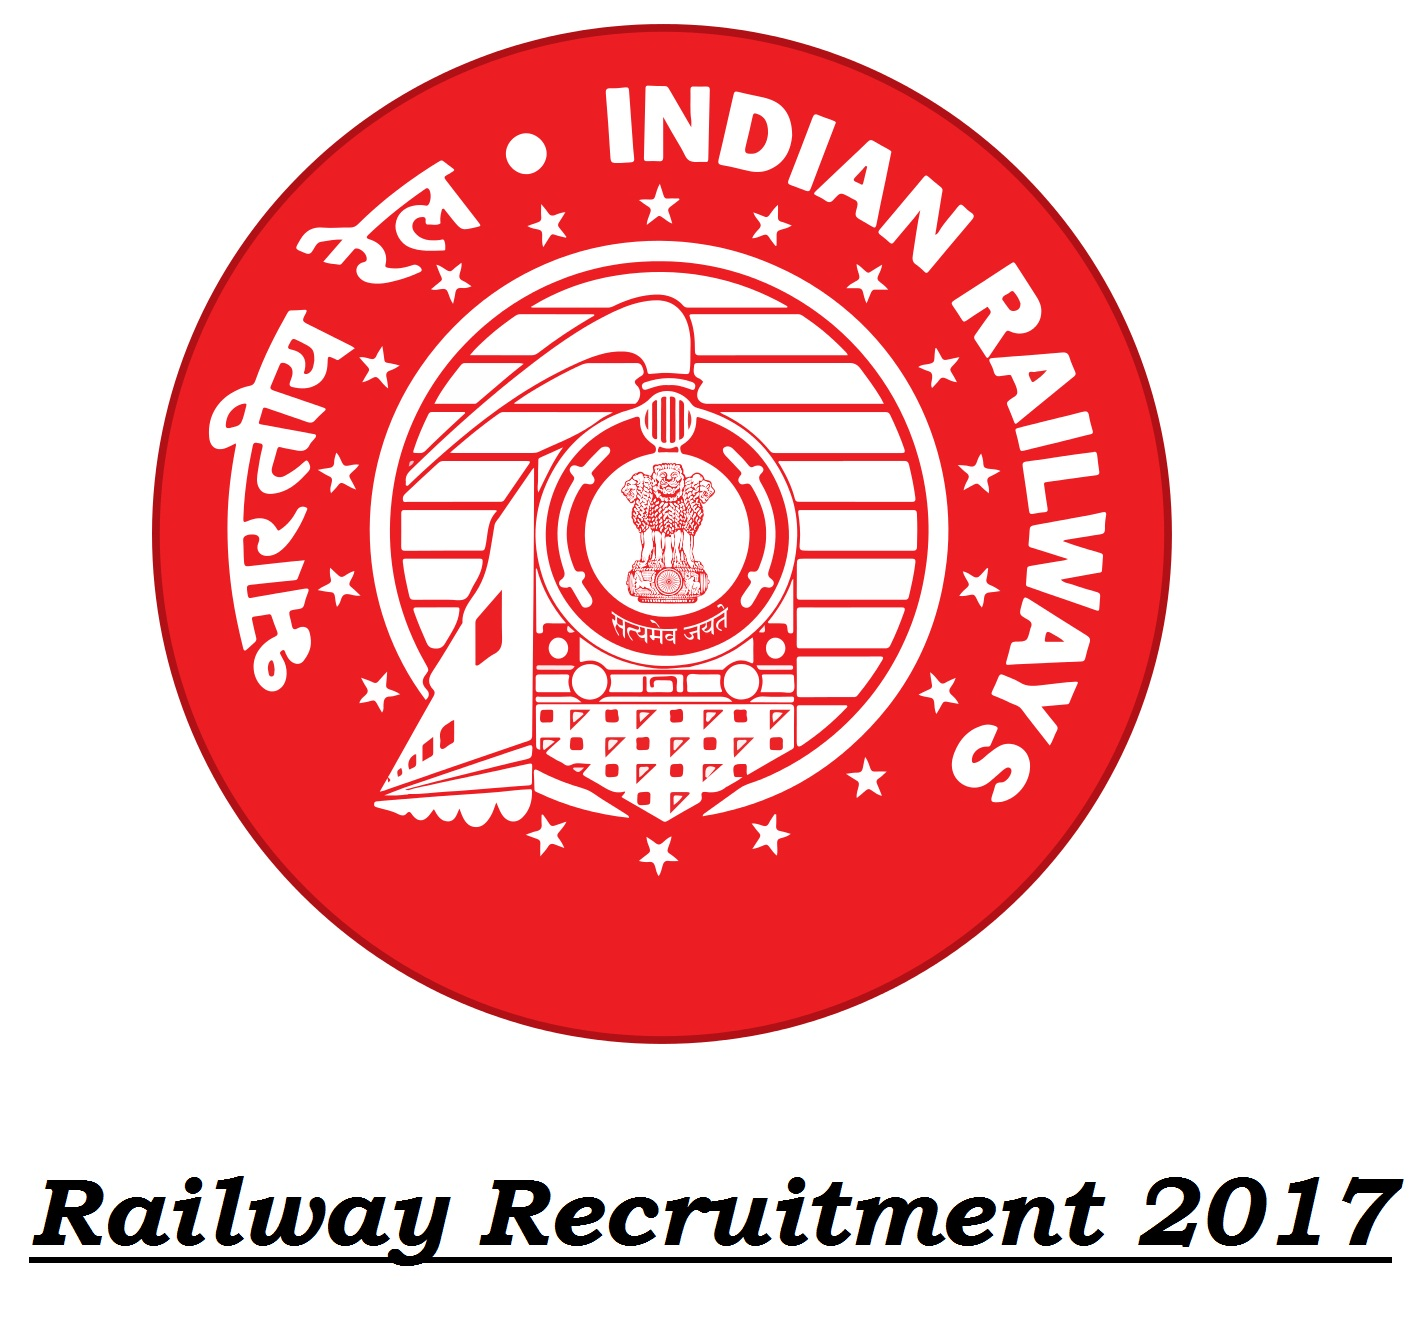 RRB Central Railway Exam